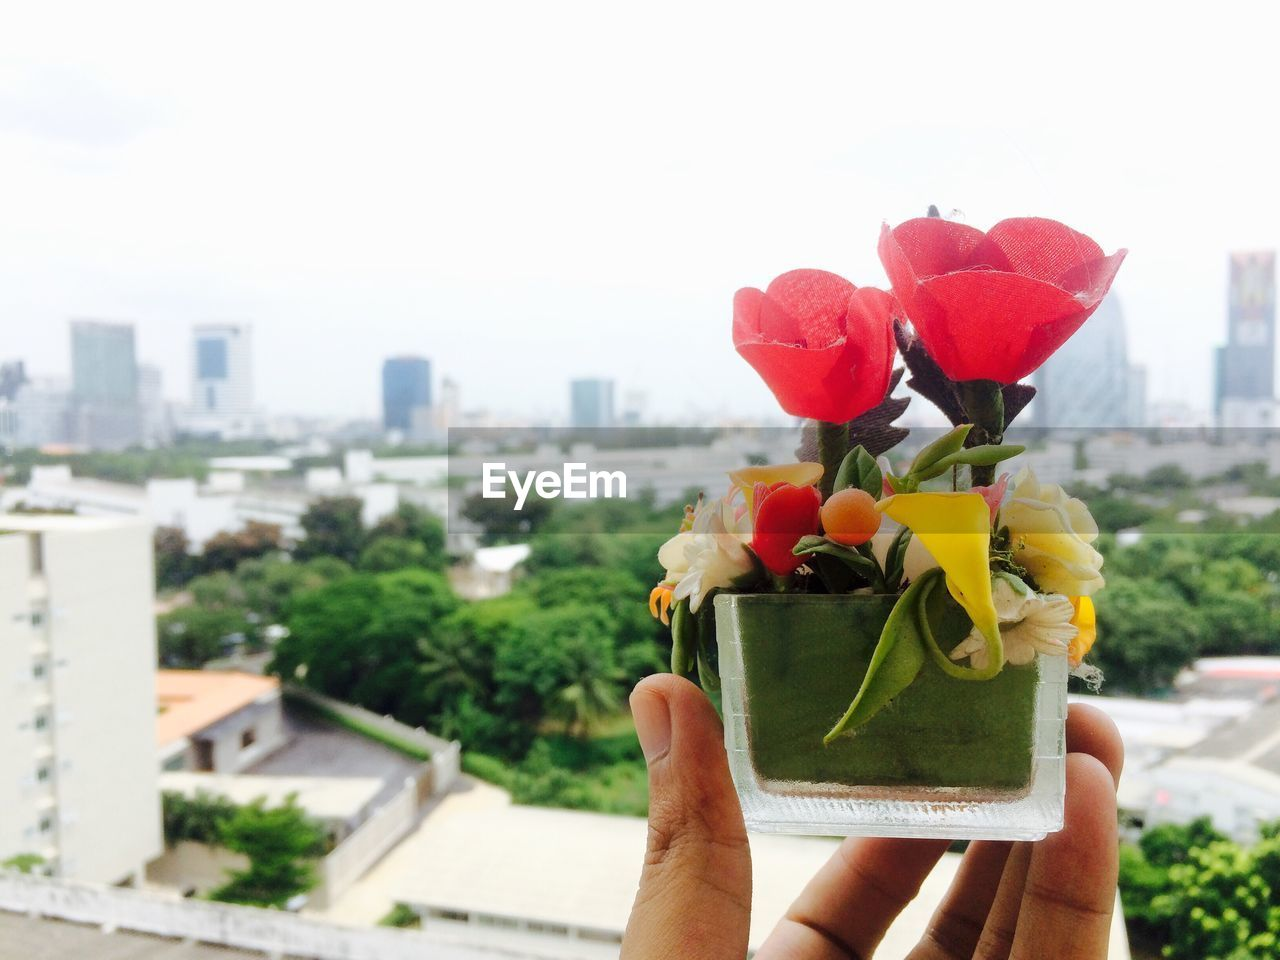 human hand, real people, human body part, one person, holding, flower, building exterior, focus on foreground, personal perspective, built structure, unrecognizable person, architecture, day, freshness, outdoors, city, petal, close-up, beauty in nature, nature, lifestyles, skyscraper, flower head, cityscape, sky, people